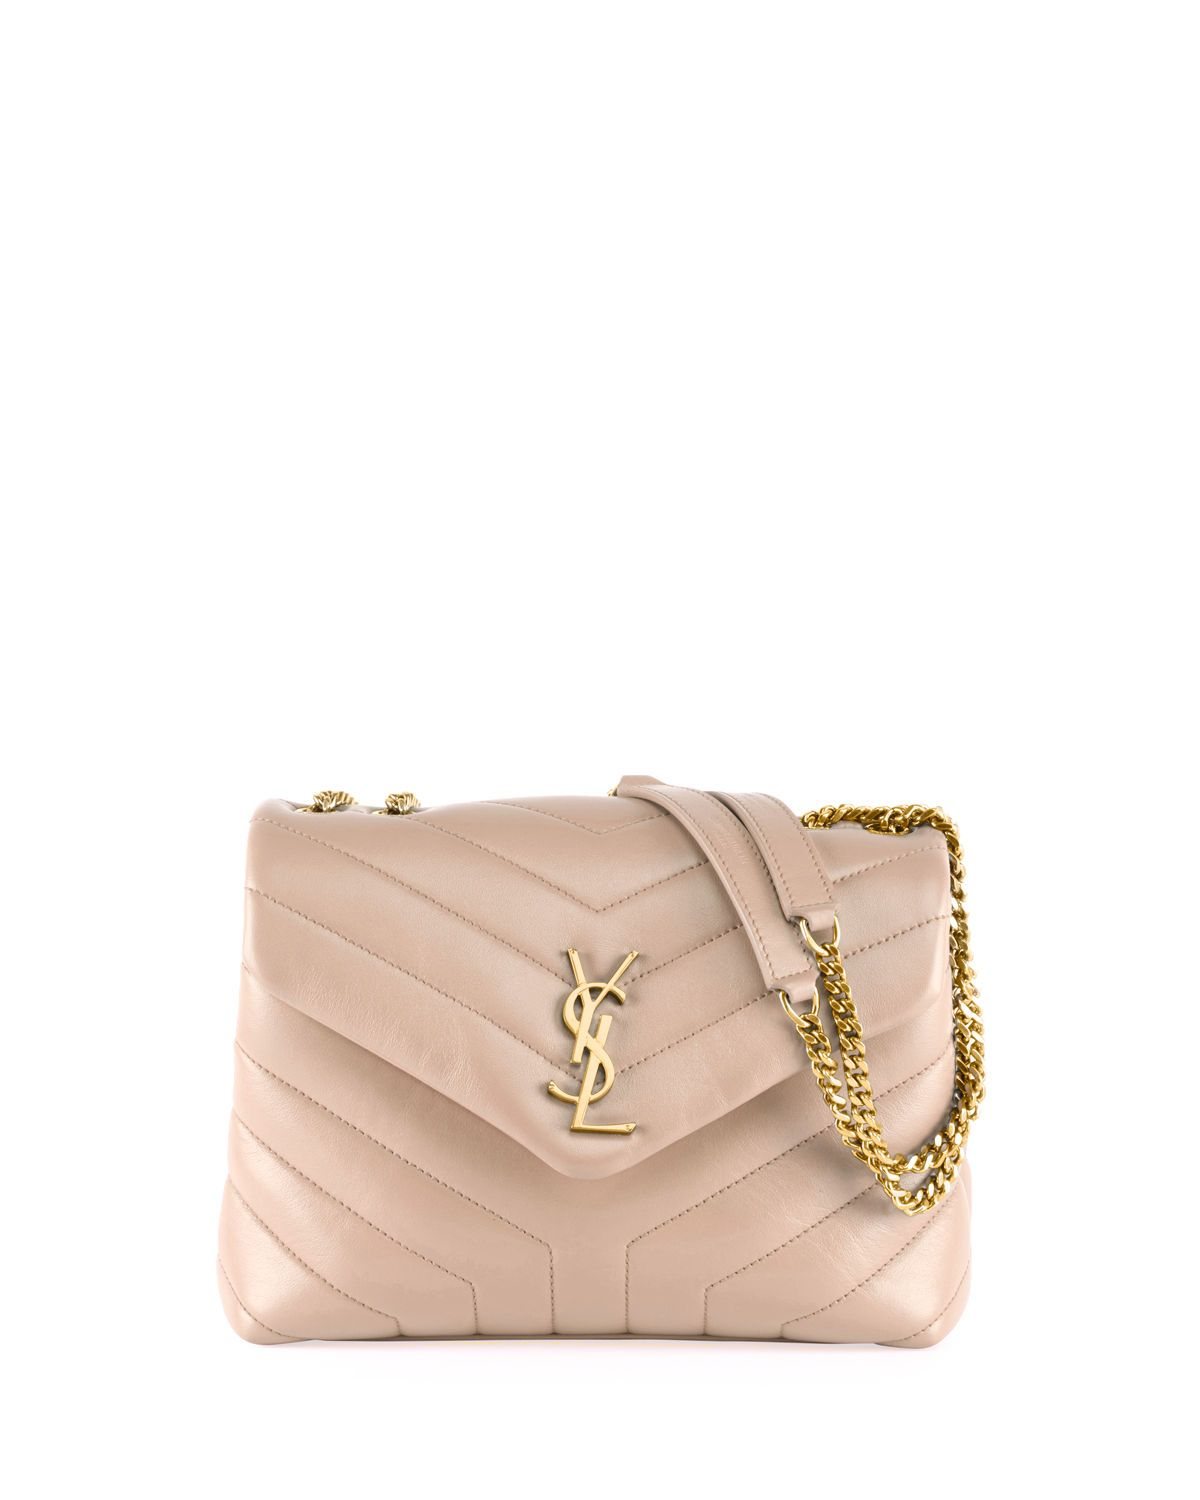 4fd4ee6e628a SAINT LAURENT LOULOU MONOGRAM YSL SMALL V-FLAP CHAIN SHOULDER BAG - LT.  BRONZE HARDWARE.  saintlaurent  bags  shoulder bags  leather